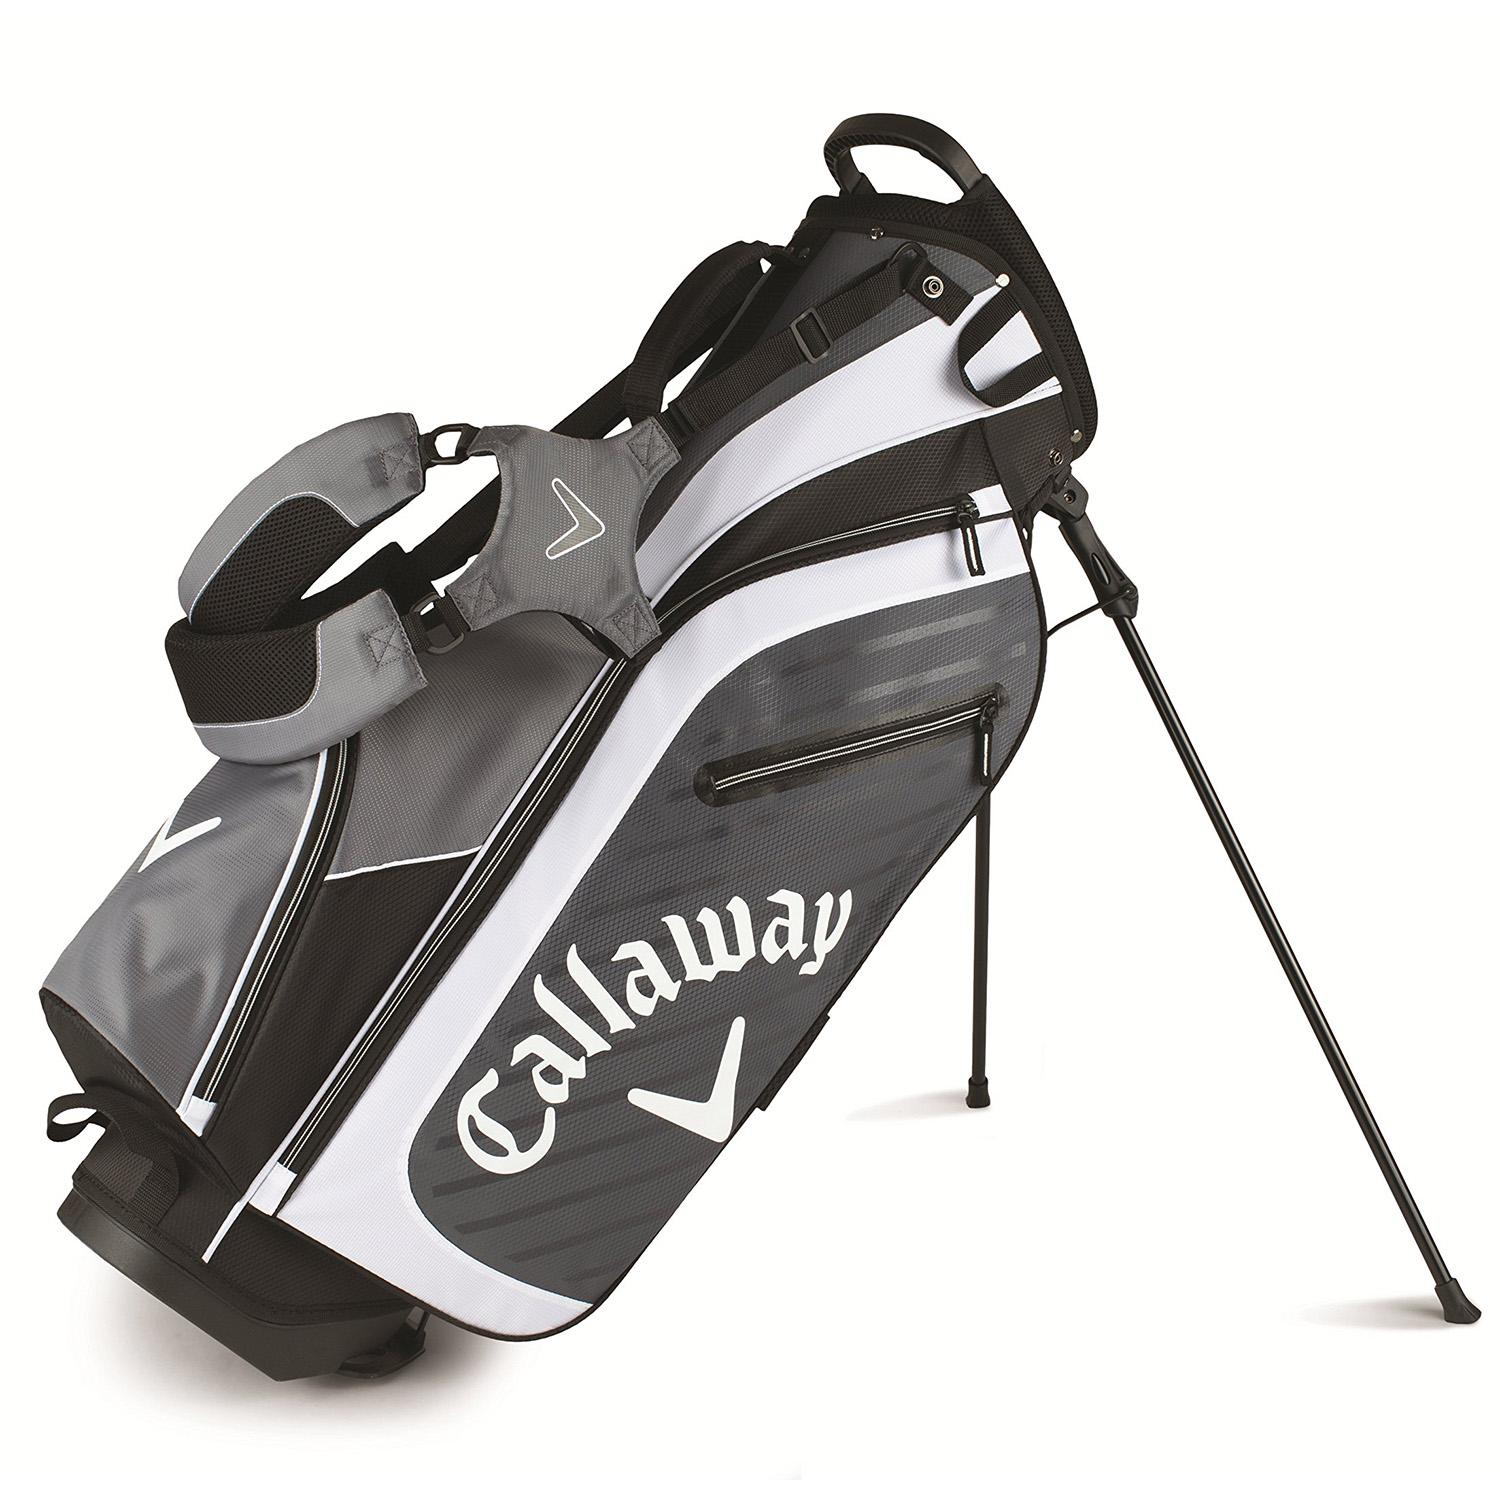 Callaway Highland Stand Bag